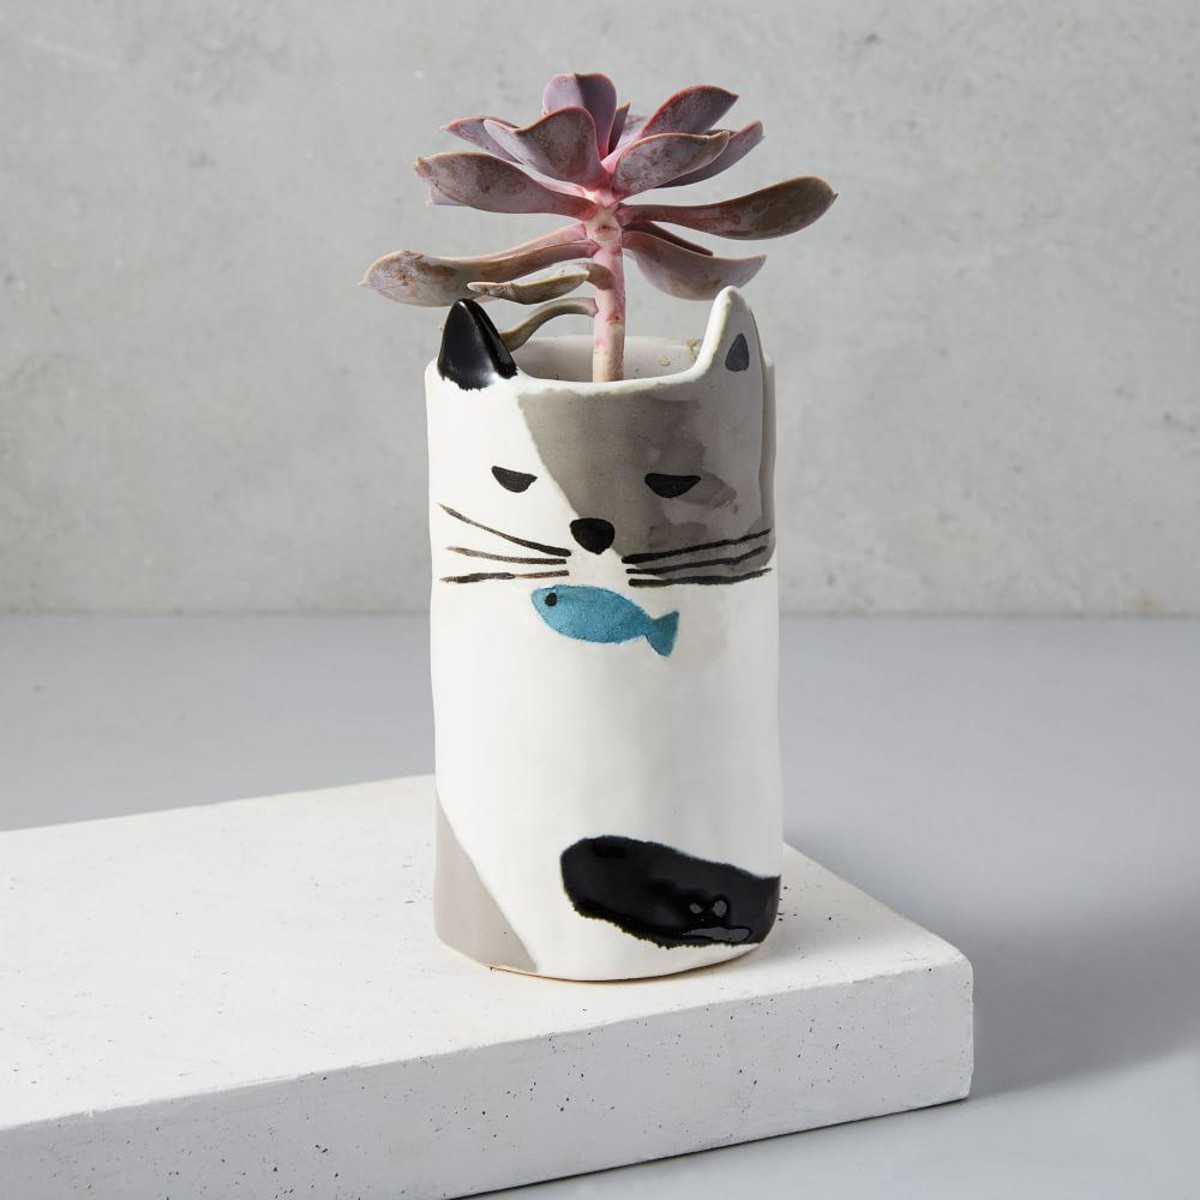 Ceramic Cat Planter, £16, West Elm